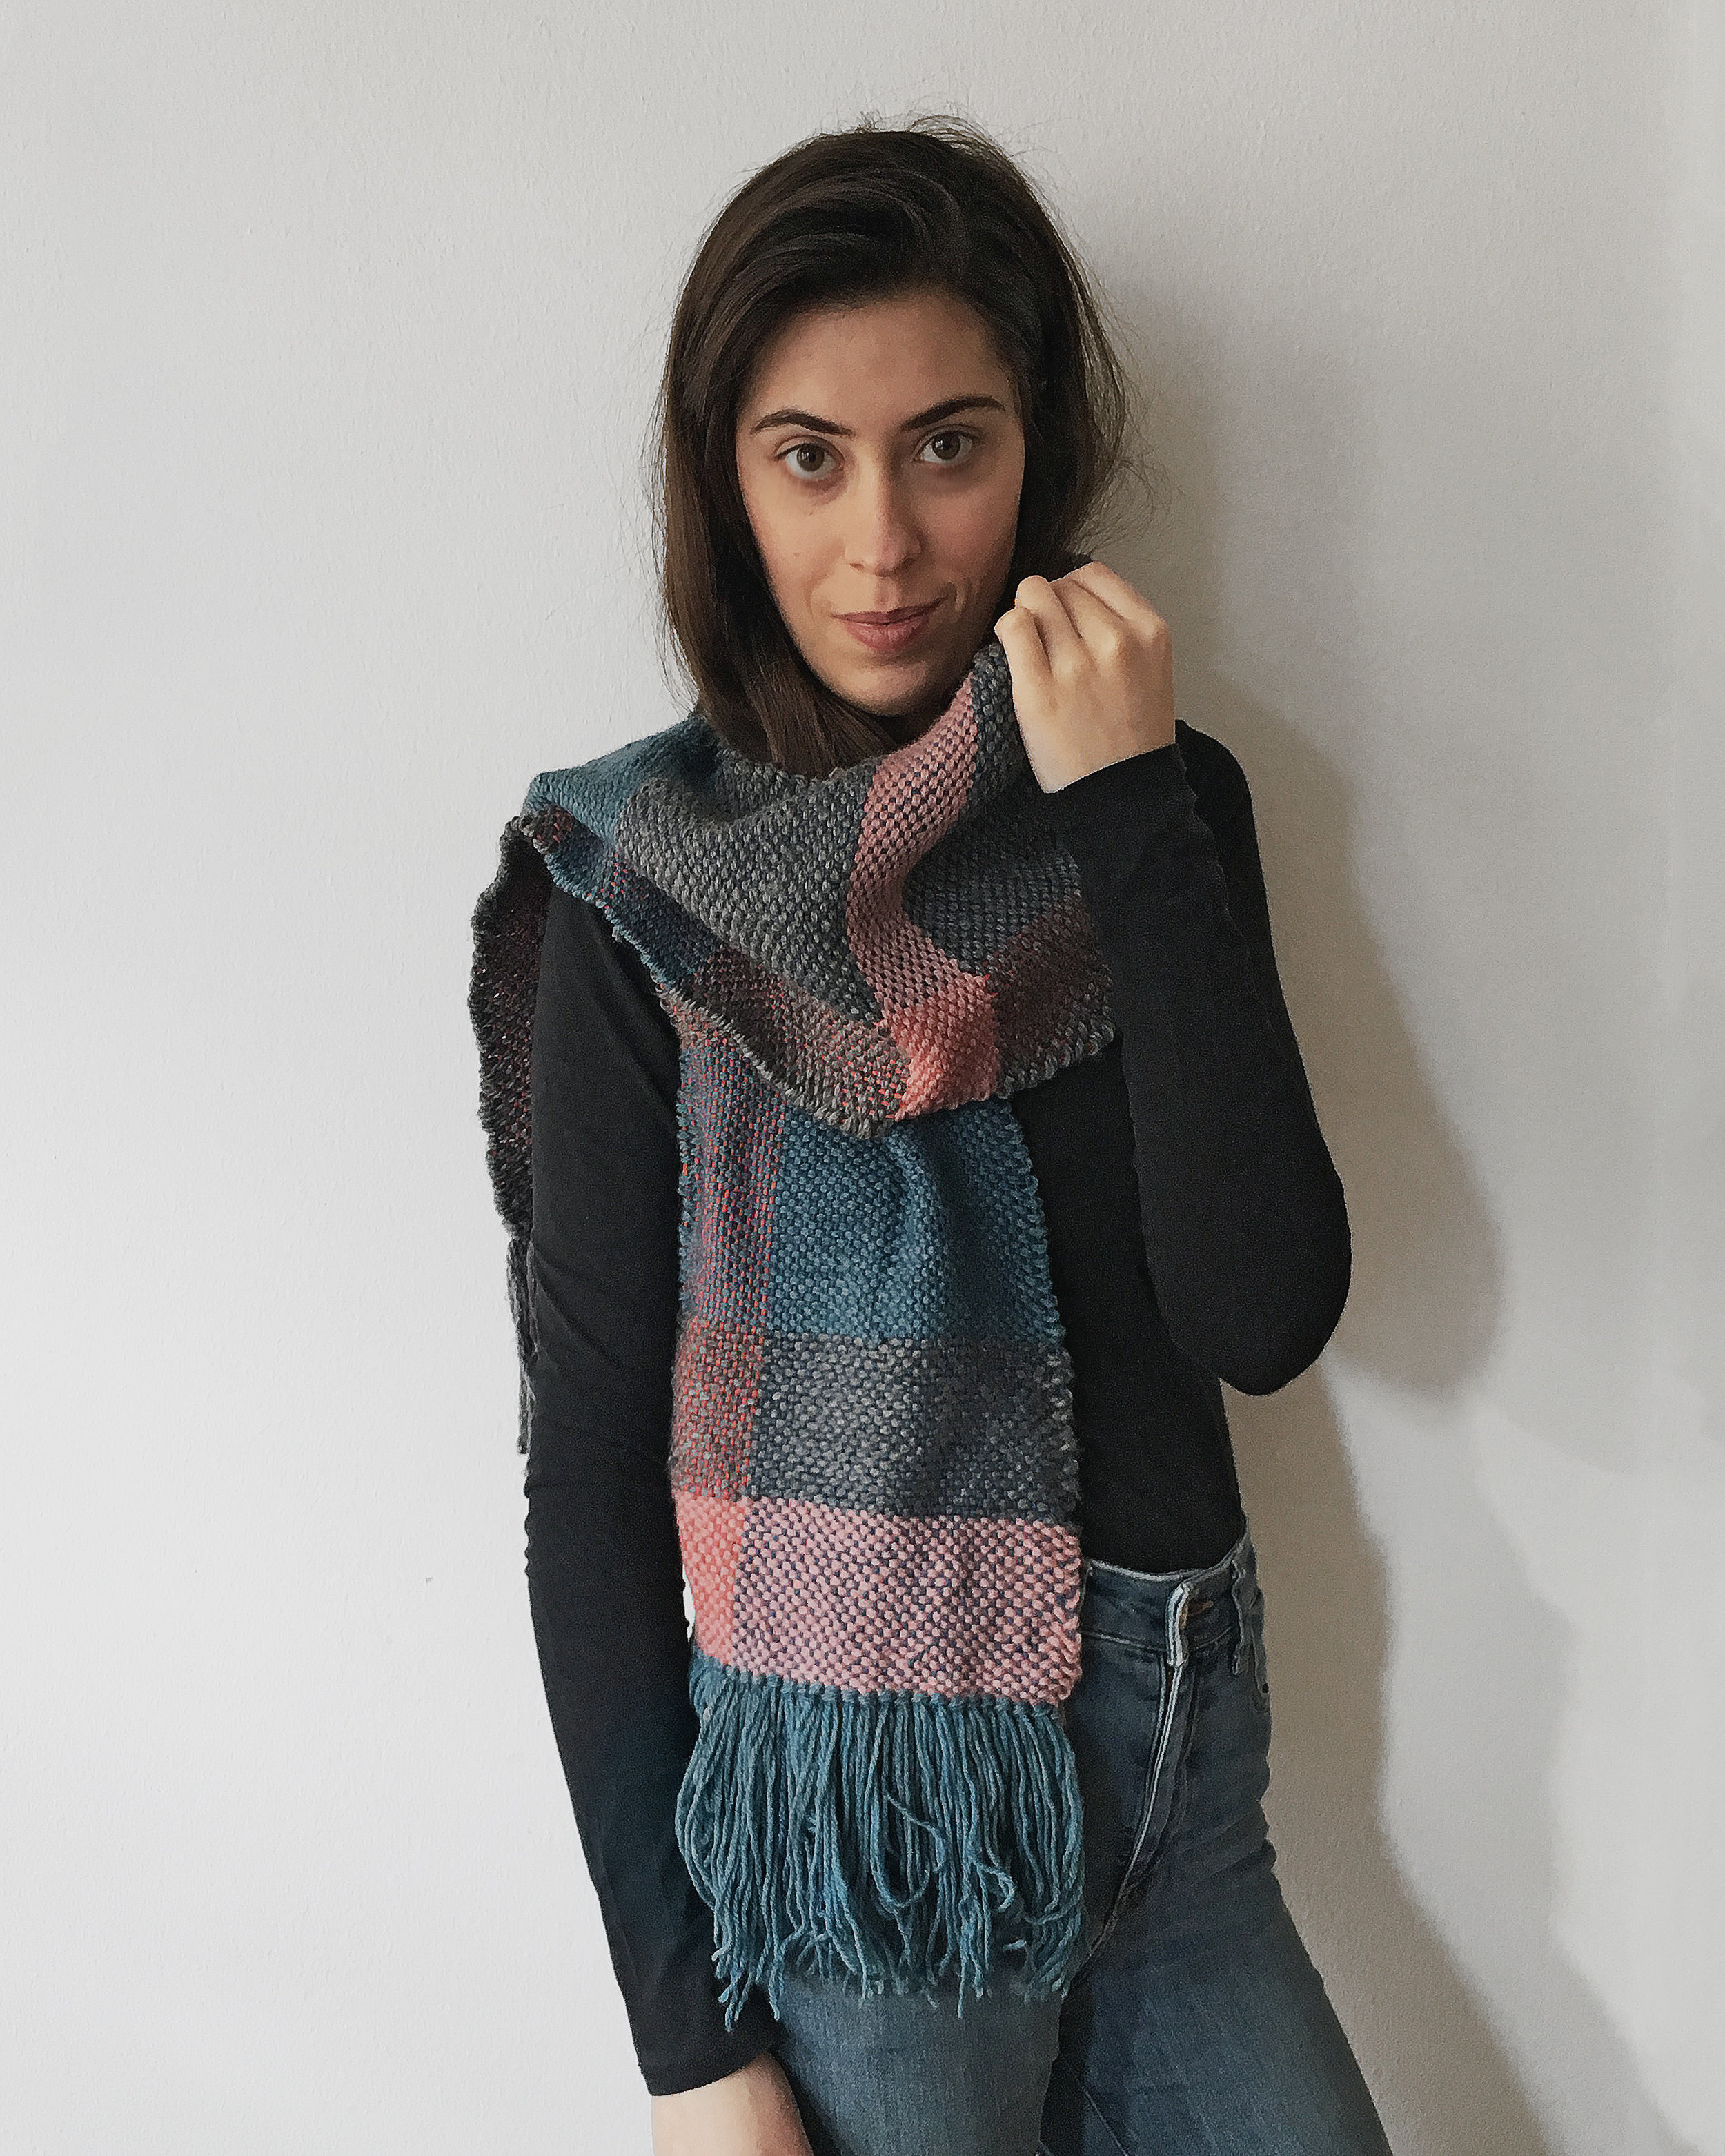 Frame loom weaving: I made this beautiful handwoven scarf on a lap loom!